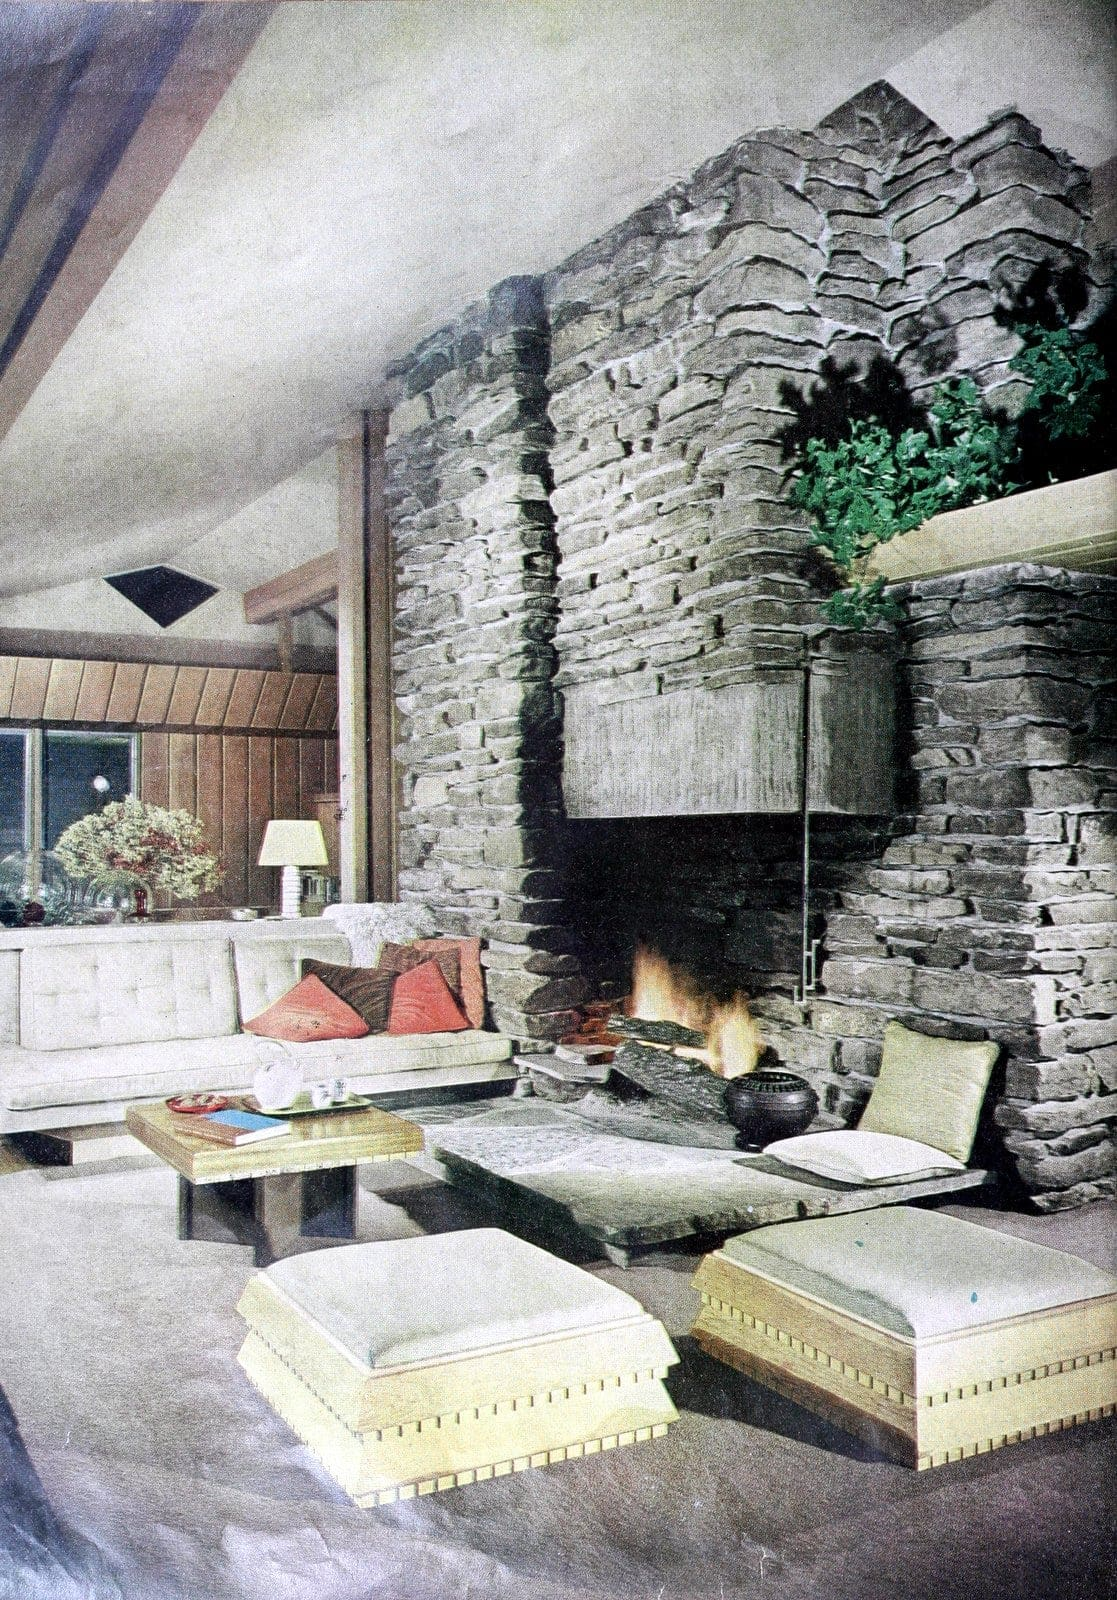 Vintage 60s living room with huge stone fireplace (1960)